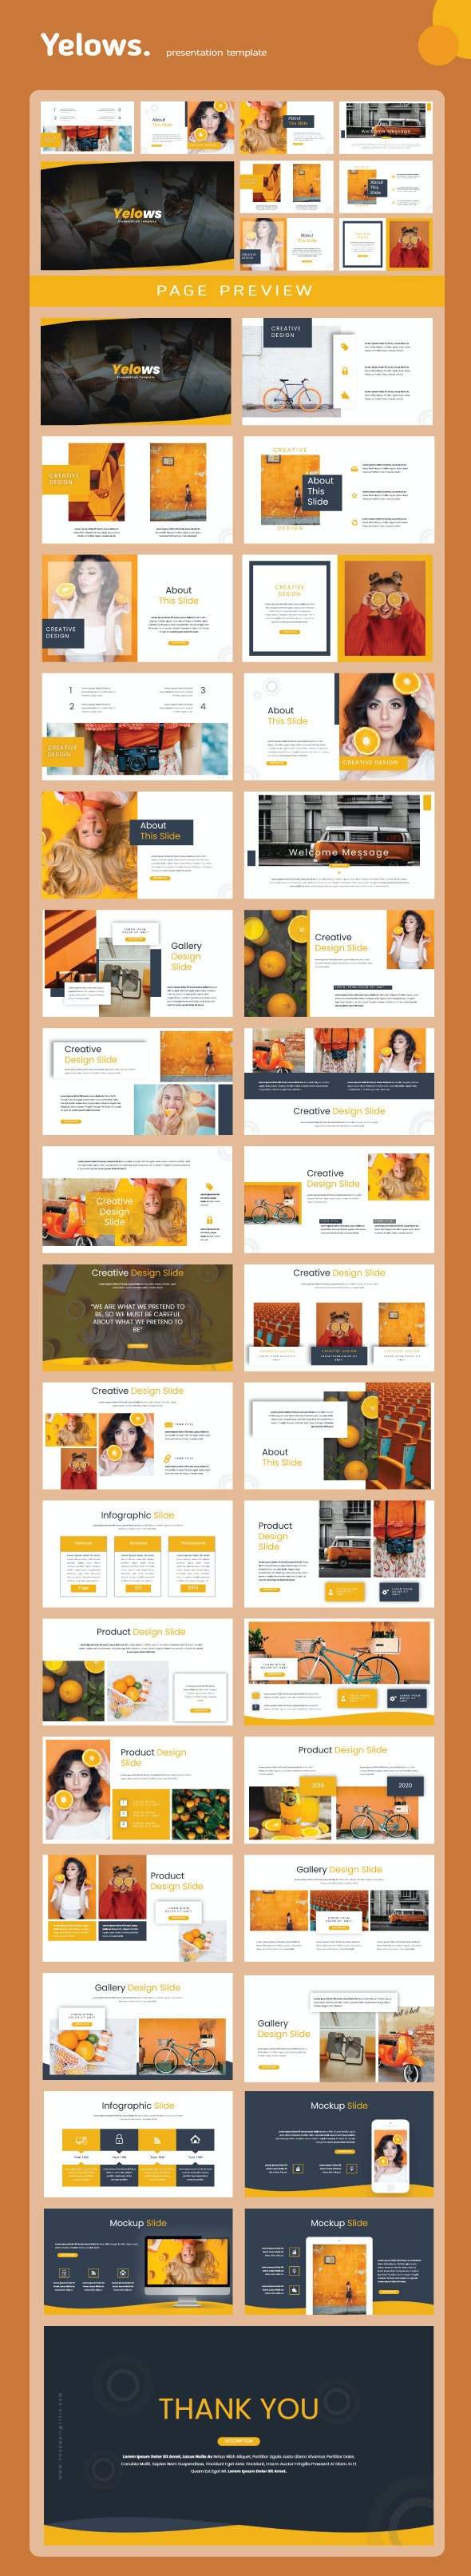 Yelows PowerPoint Templates - Creative PowerPoint Templates